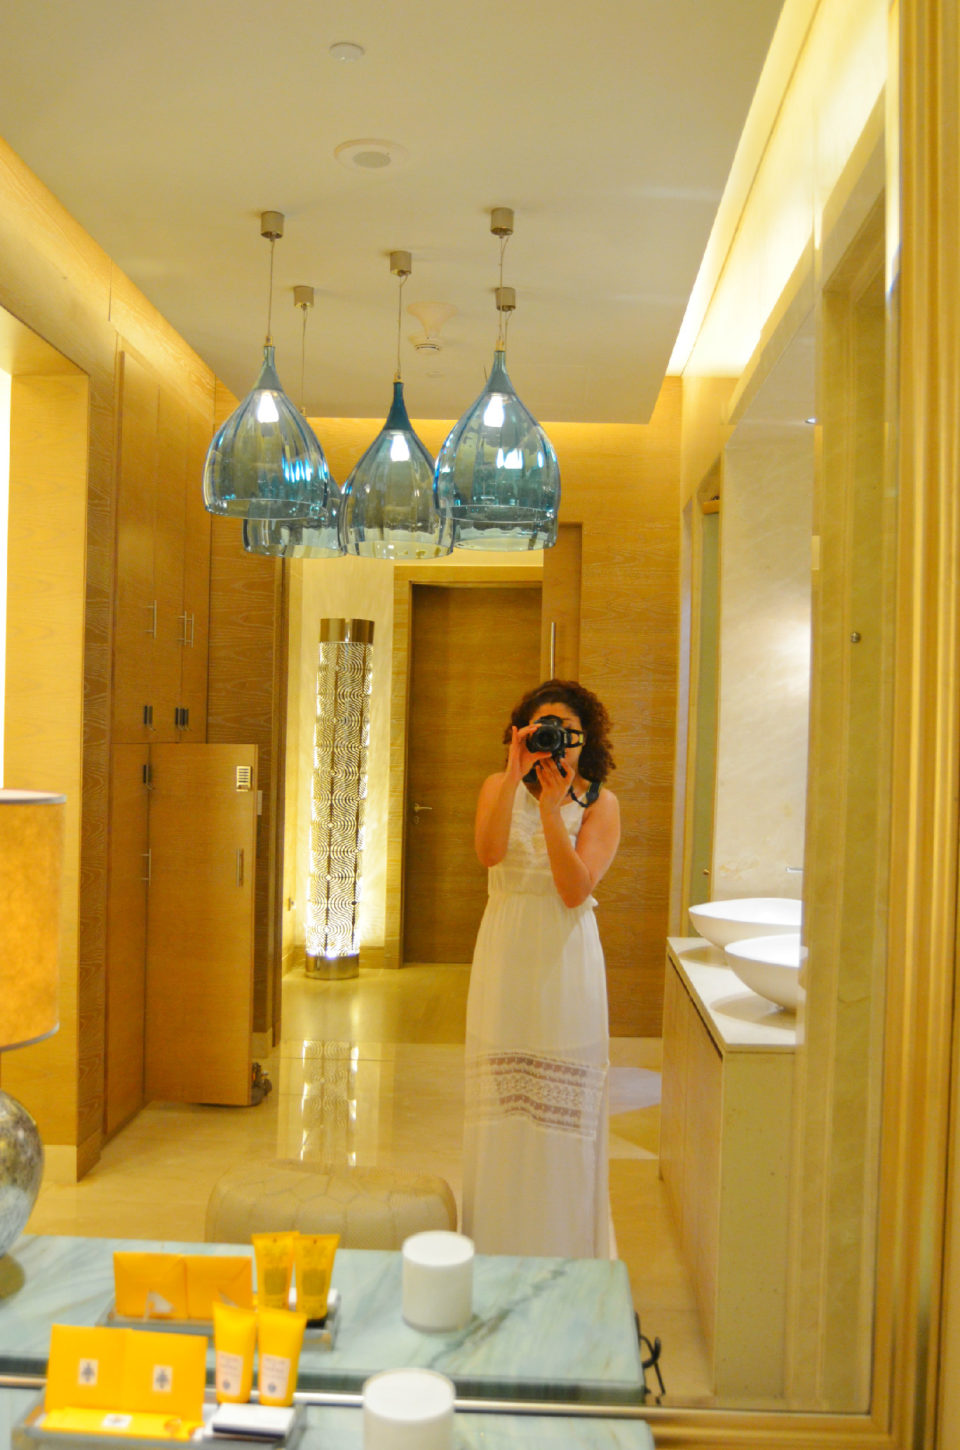 lifestyle redesign  - dsc 0002edited 960x1450 - Guerlain Spa Dubai at the One & Only The Palm Dubai